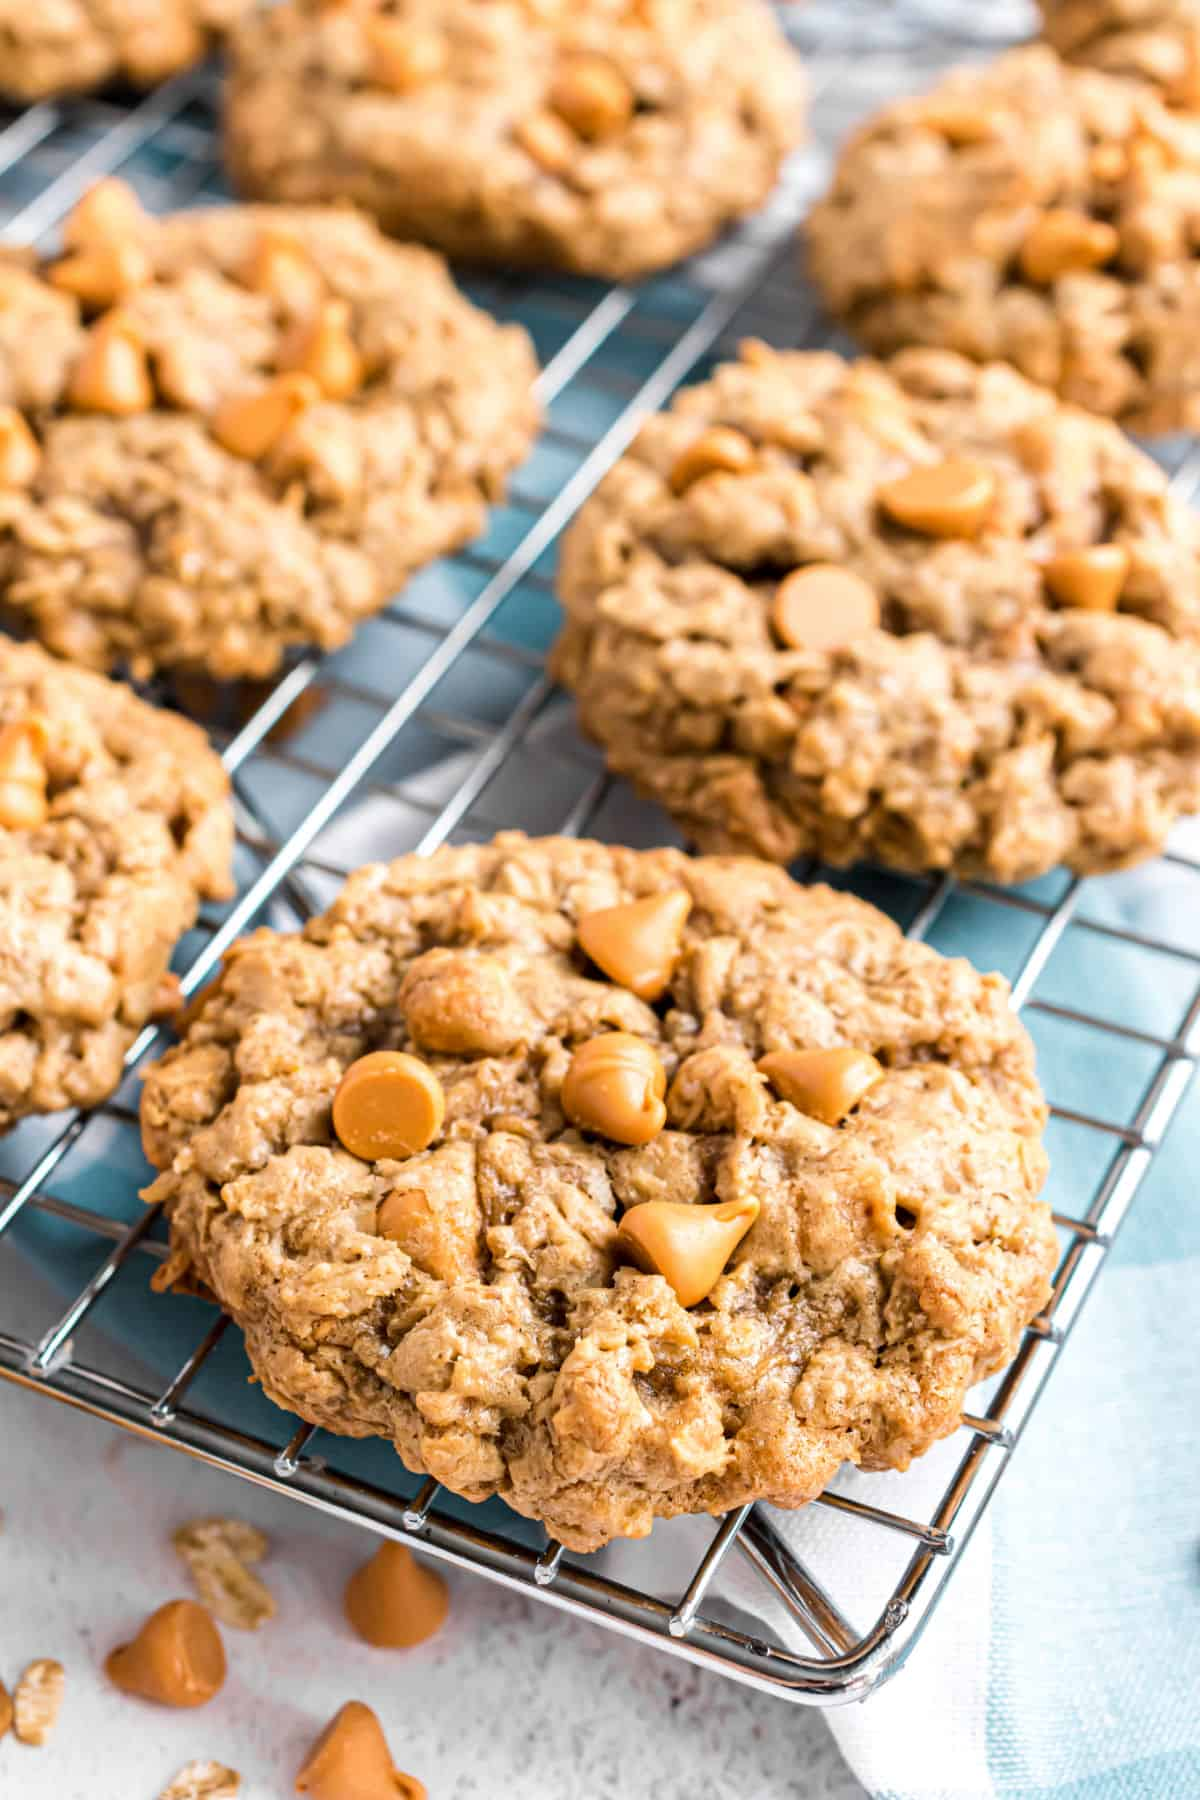 Oatmeal Scotchie Cookies cooling on a wire rack with extra butterscotch morsels.